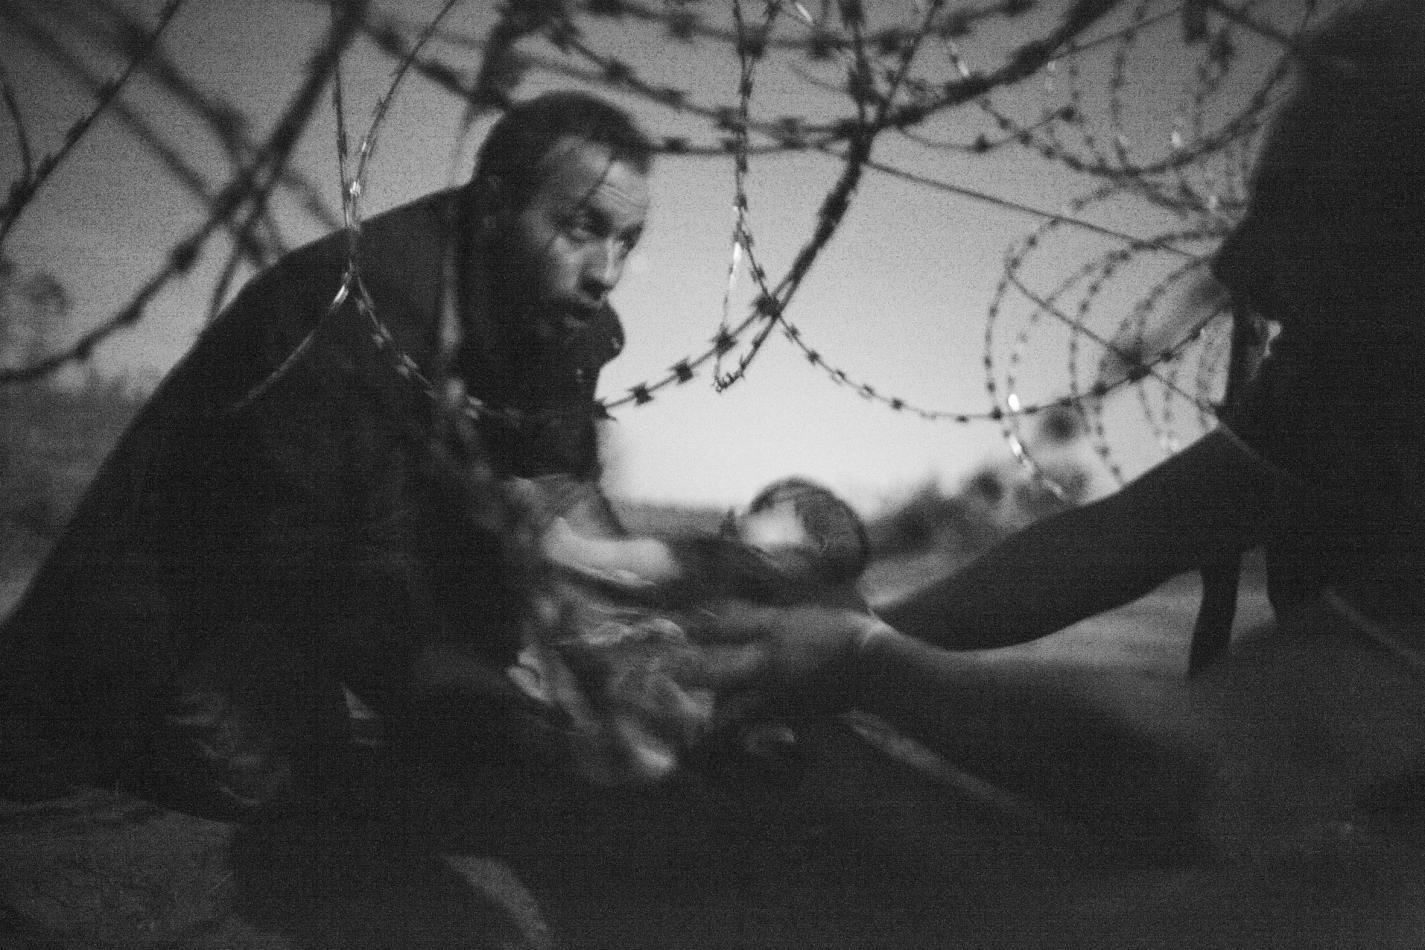 Impressioni dal World Press Photo 2016